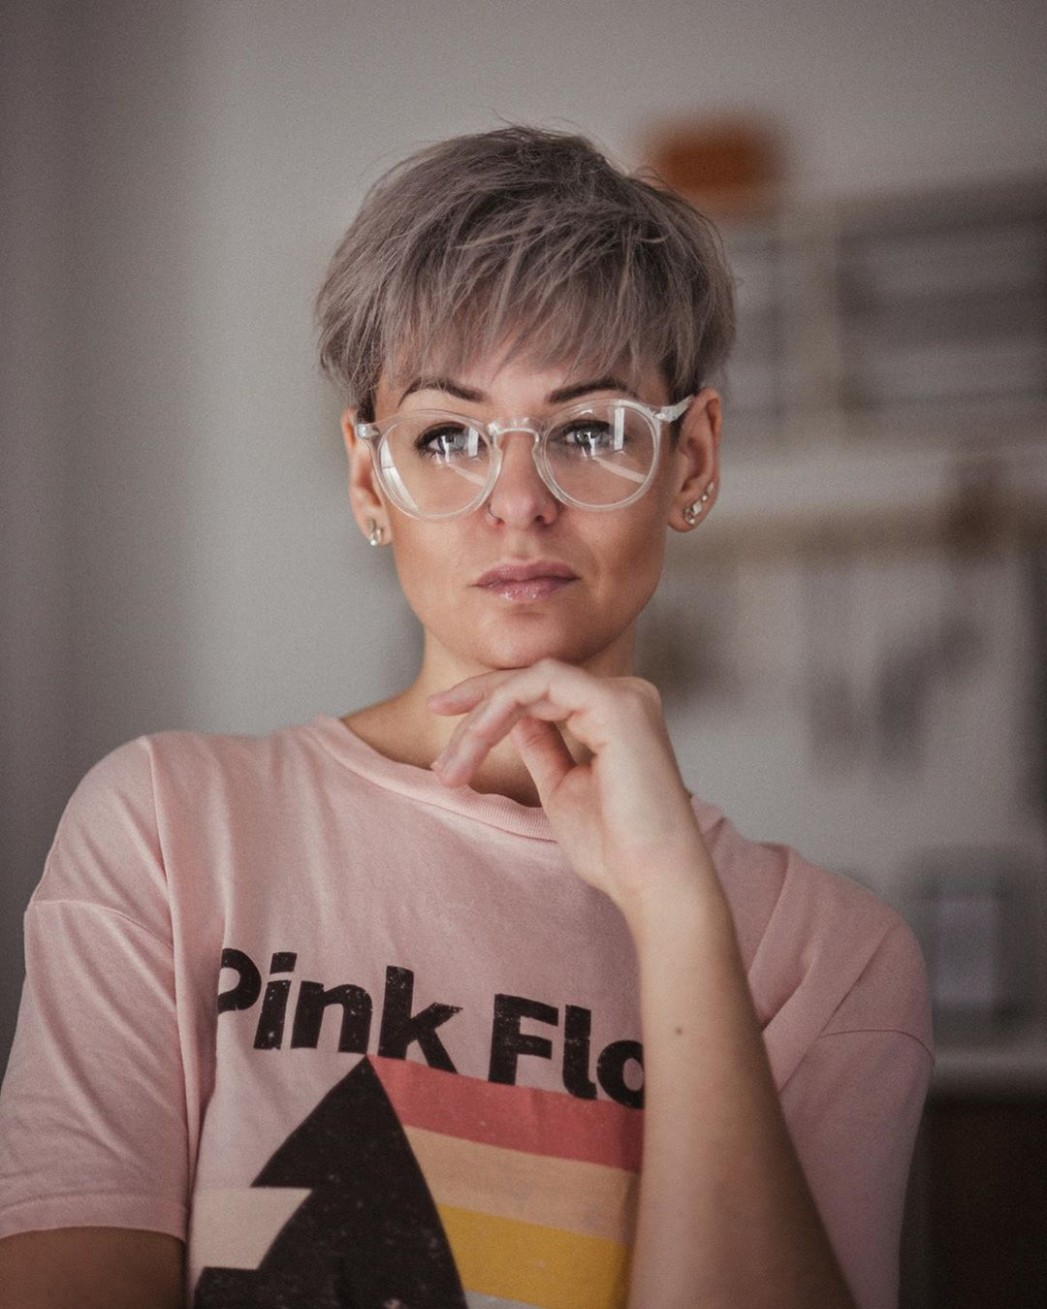 What Are The Best Short Hairstyles To Wear With Glasses? Hair Pixie Cut With Glasses